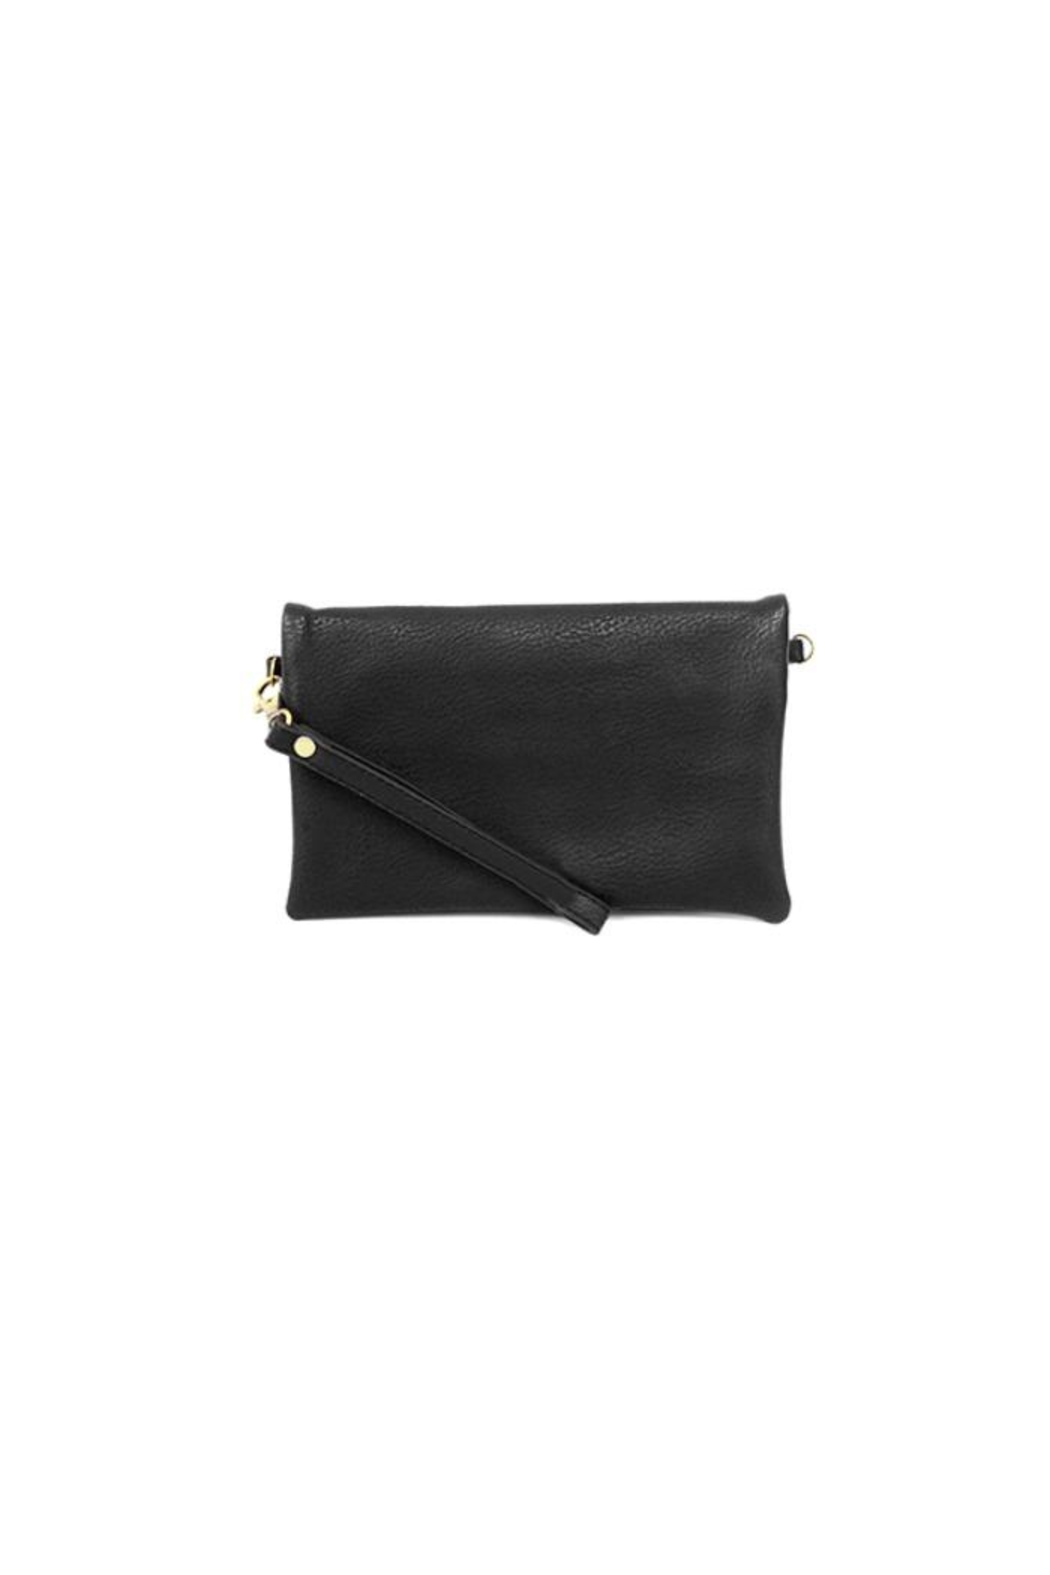 Joy Accessories Black Kate Crossbody Bag - Main Image